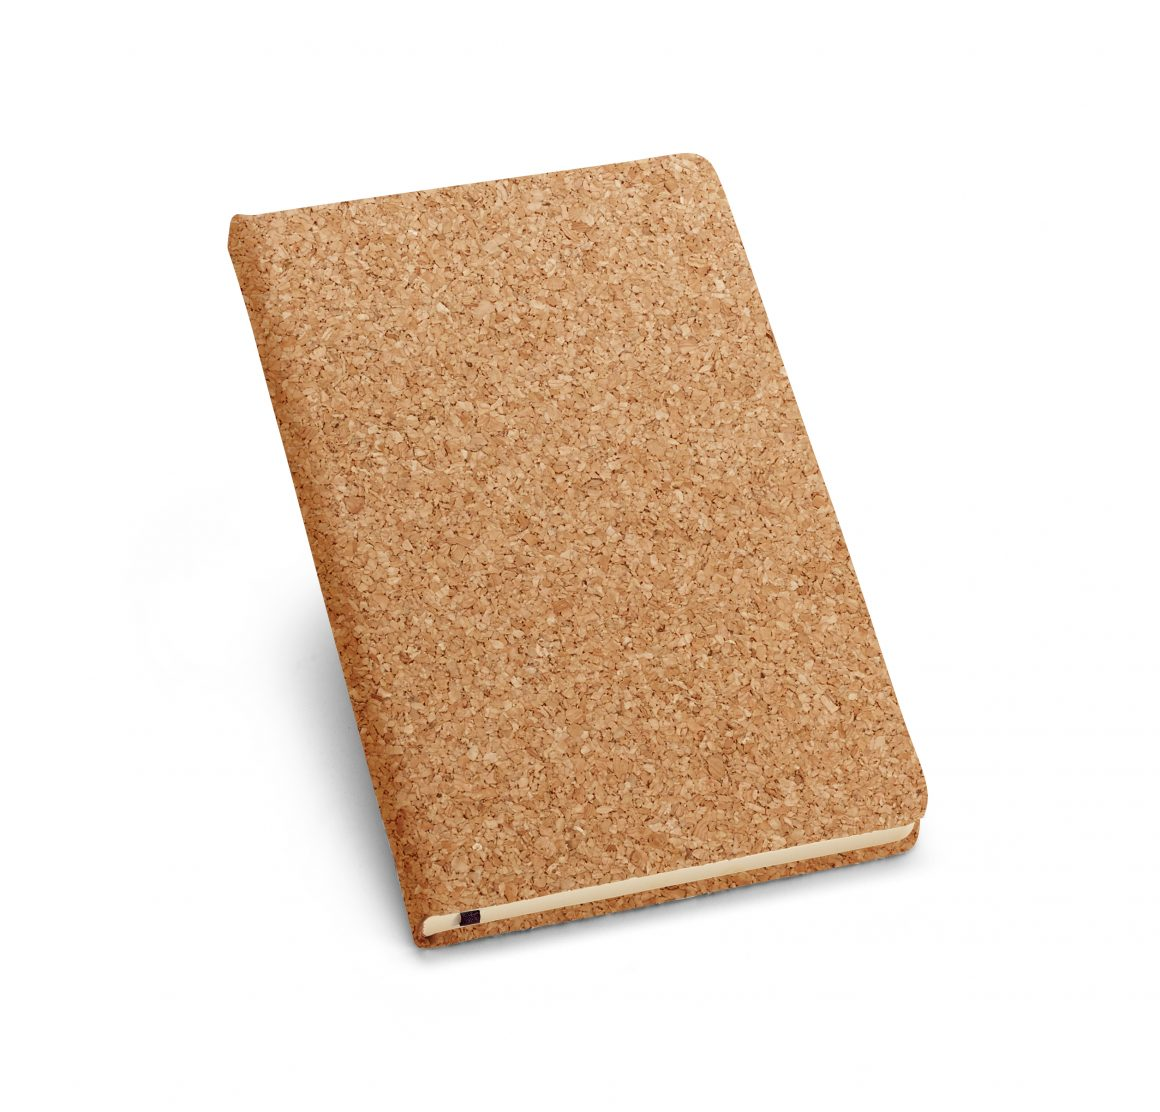 Tremellin Cork Notepad Product Code GP93488